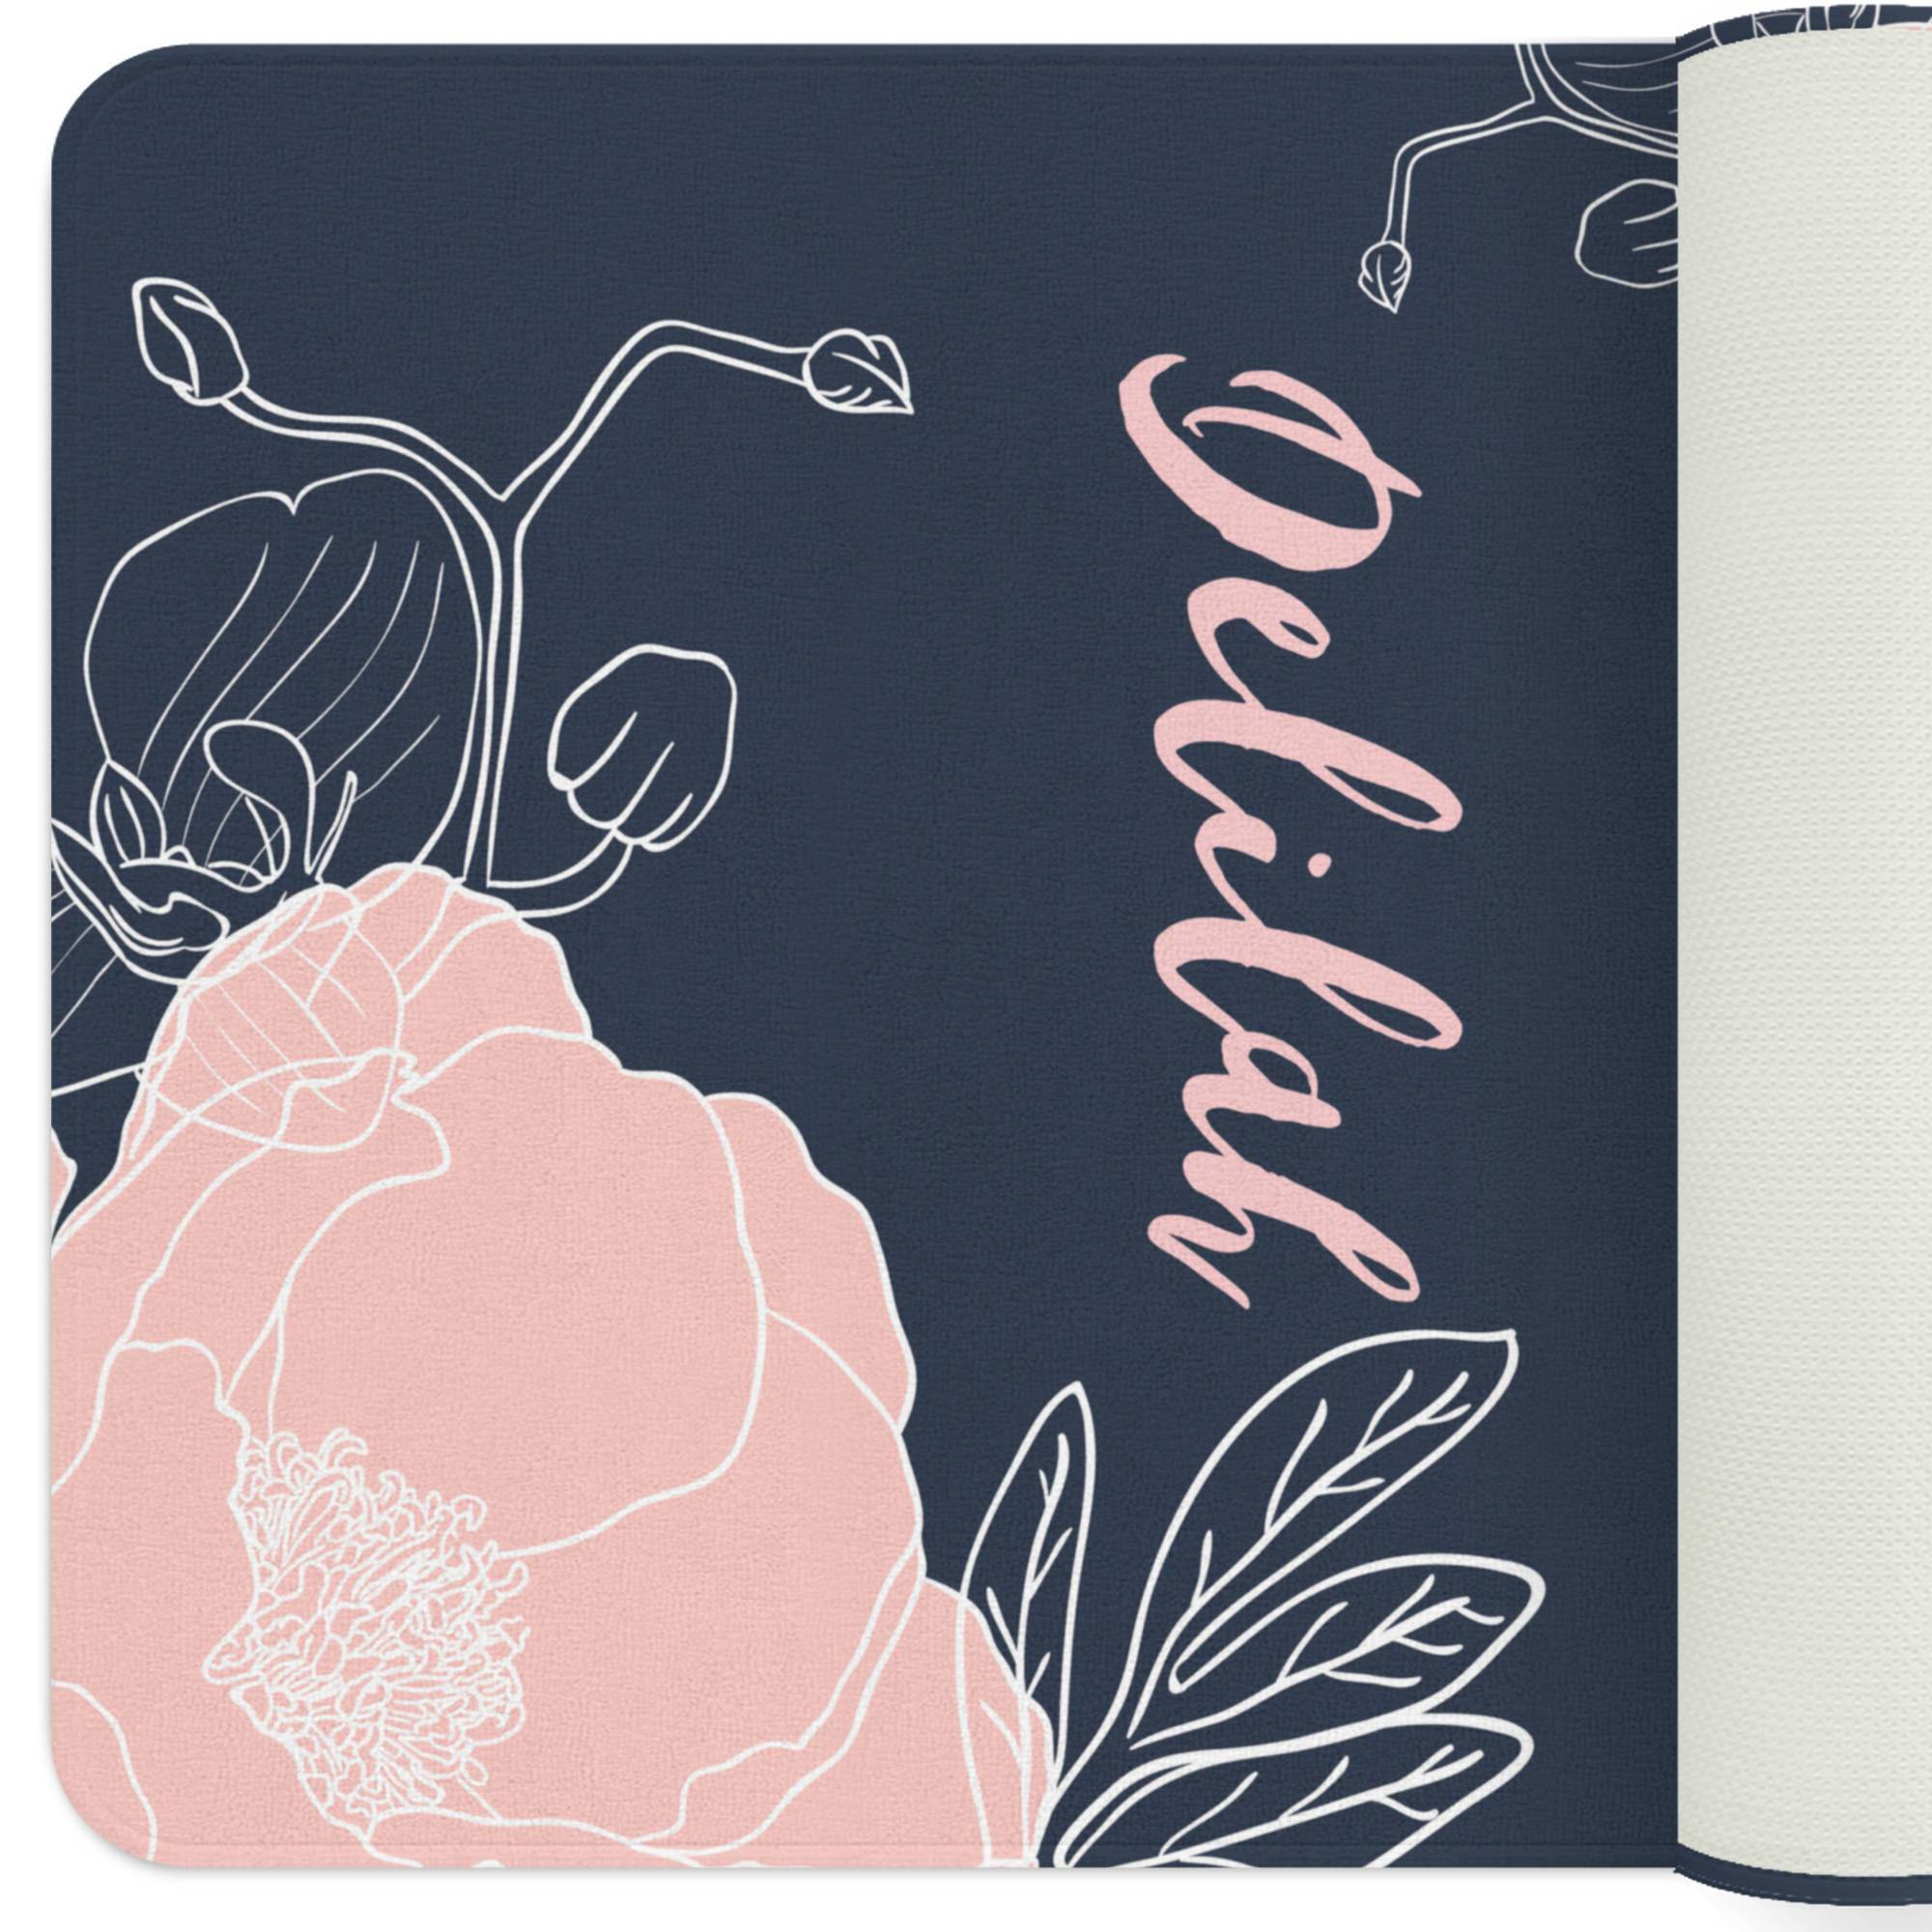 A navy floral rug with a blush flower illustration on diagonally opposite corners. The nursery rug also has a customized monogram in the center.